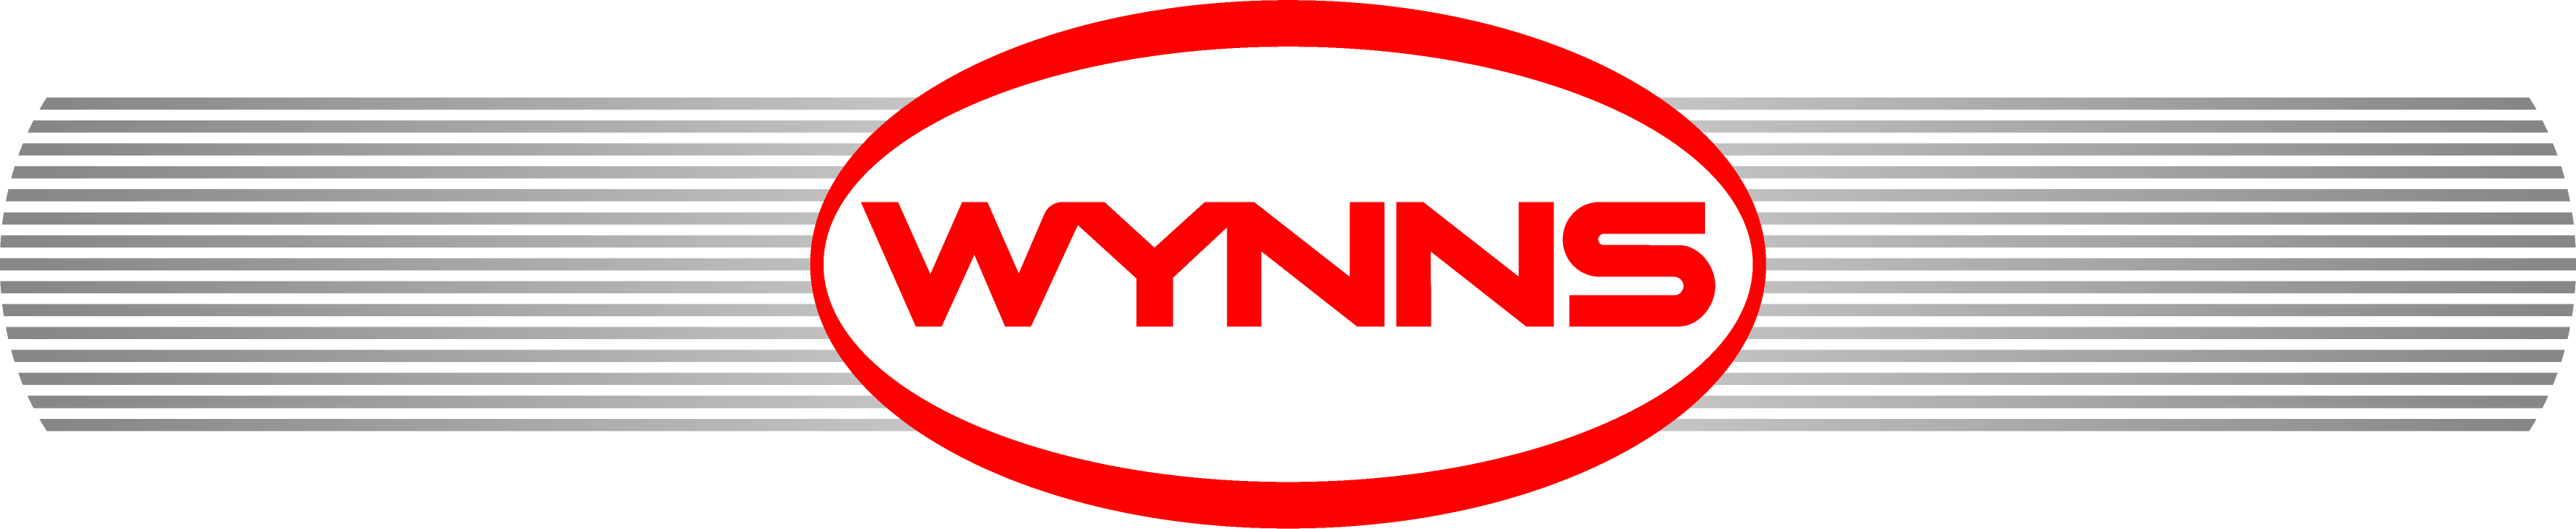 Wynns Locksmiths